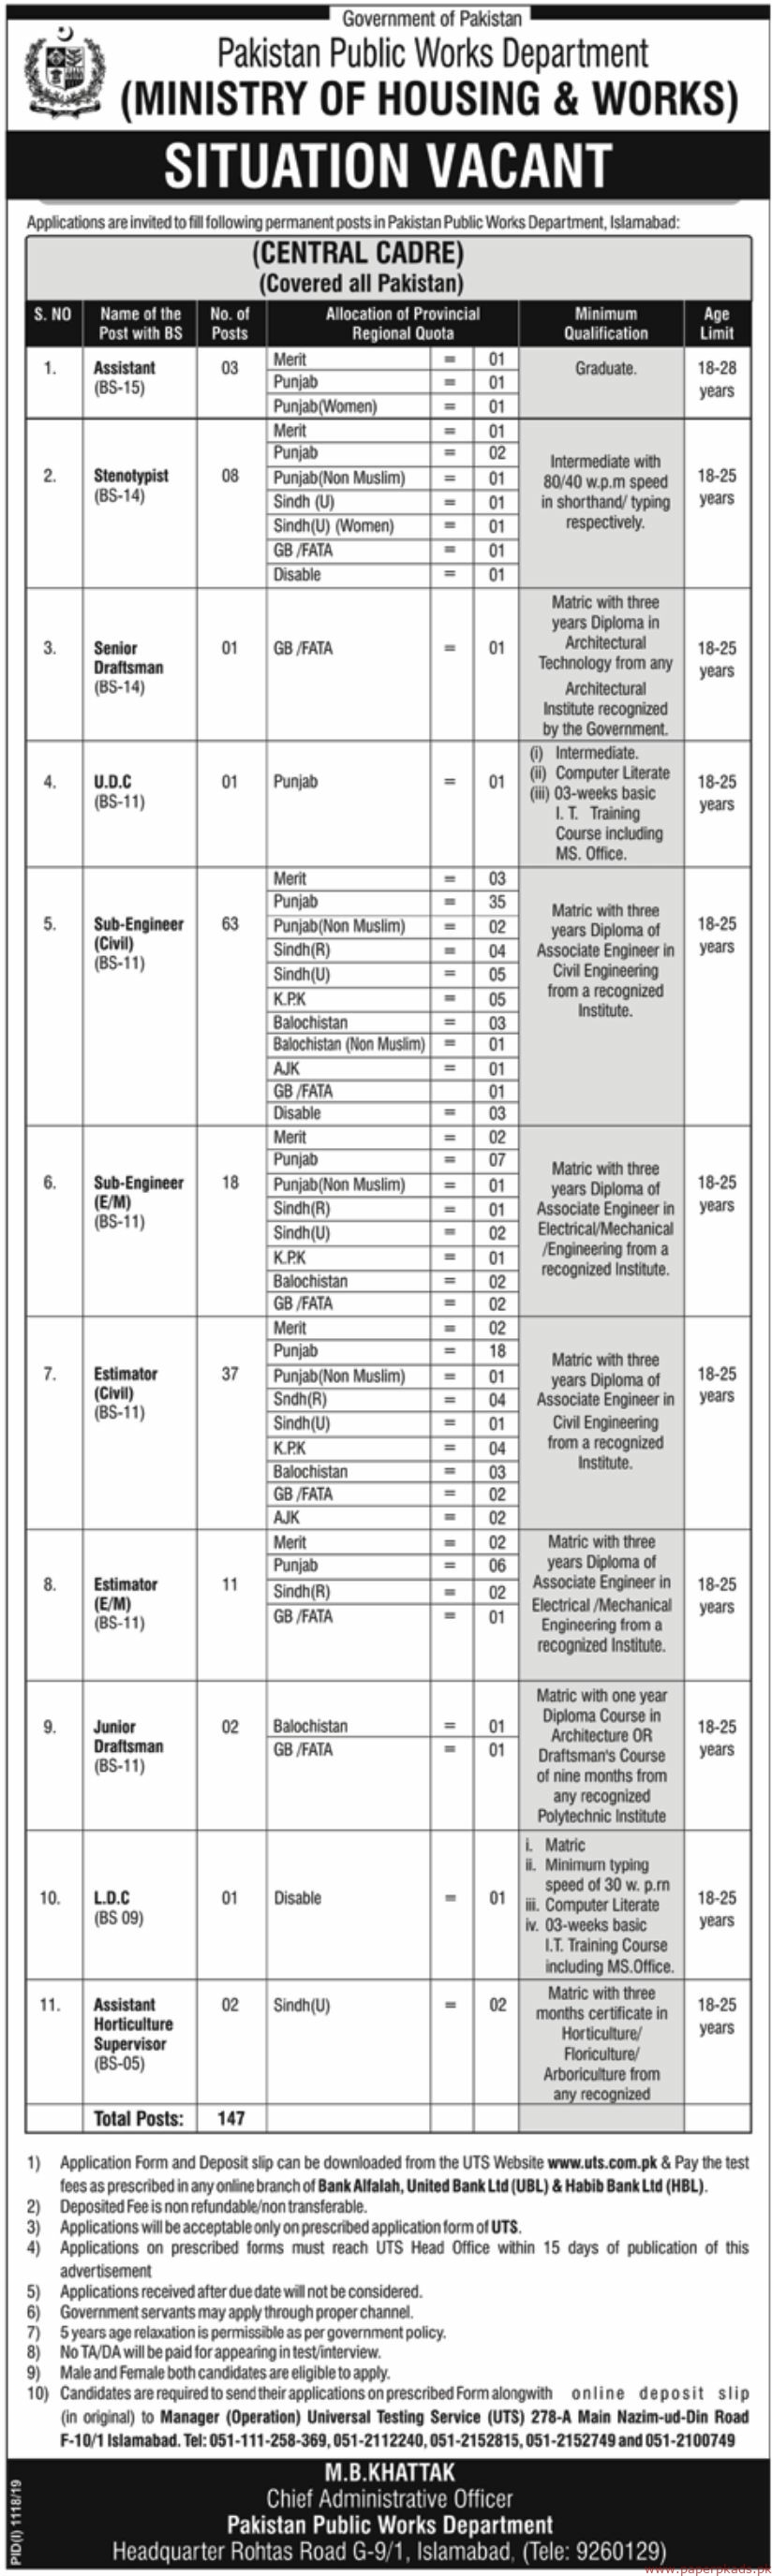 Government of Pakistan Ministry of Housing & Works Jobs 2019 Latest